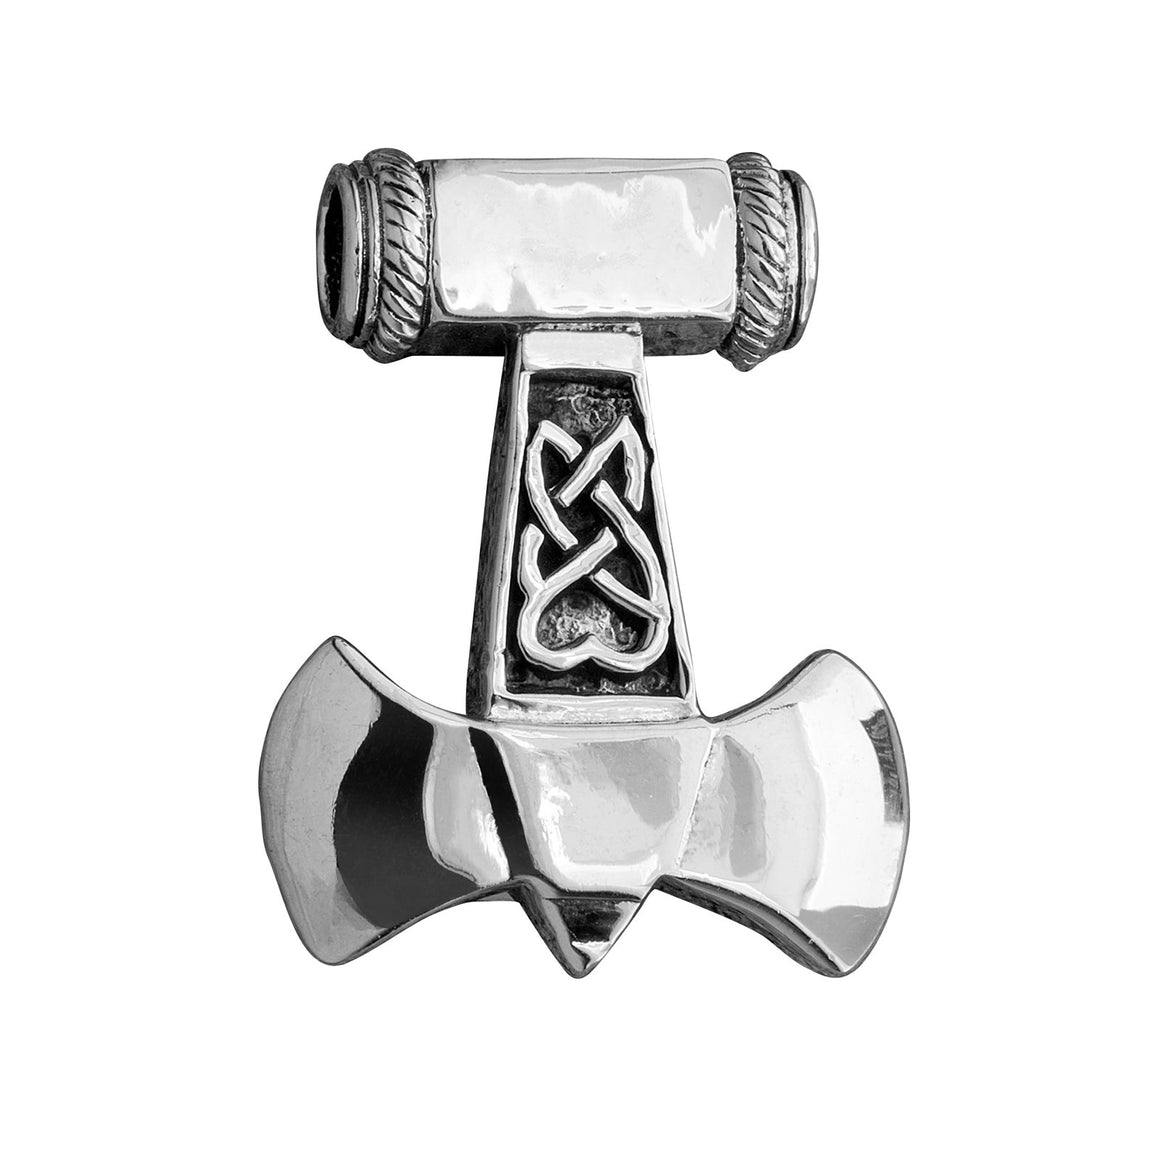 925 Sterling Silver Thor Hammer Mjolnir Viking Axe Knotwork Amulet Pendant - SilverMania925